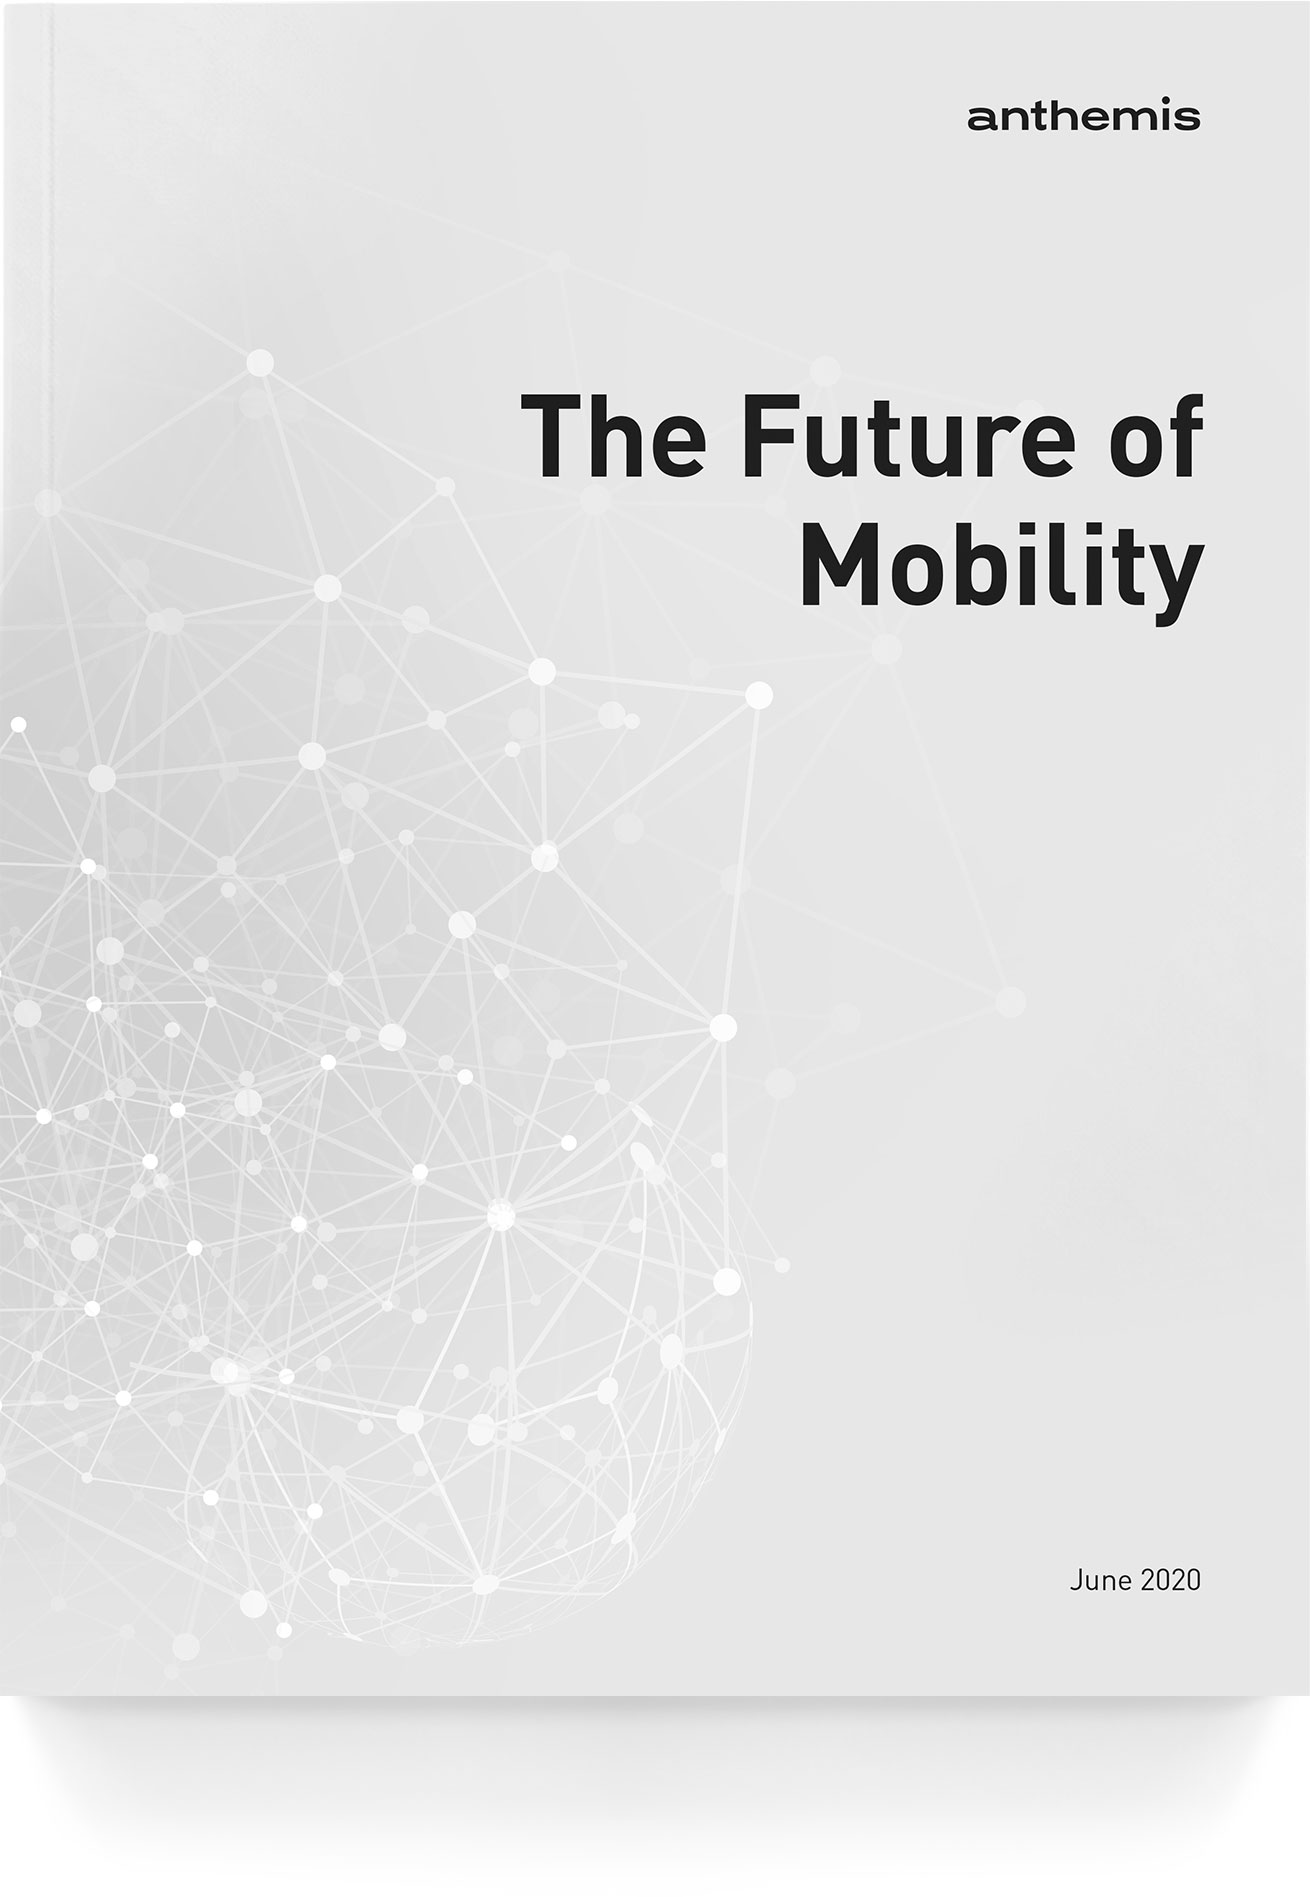 Anthemis-The-Future-of-Mobility-White-Paper-June-2020-cover